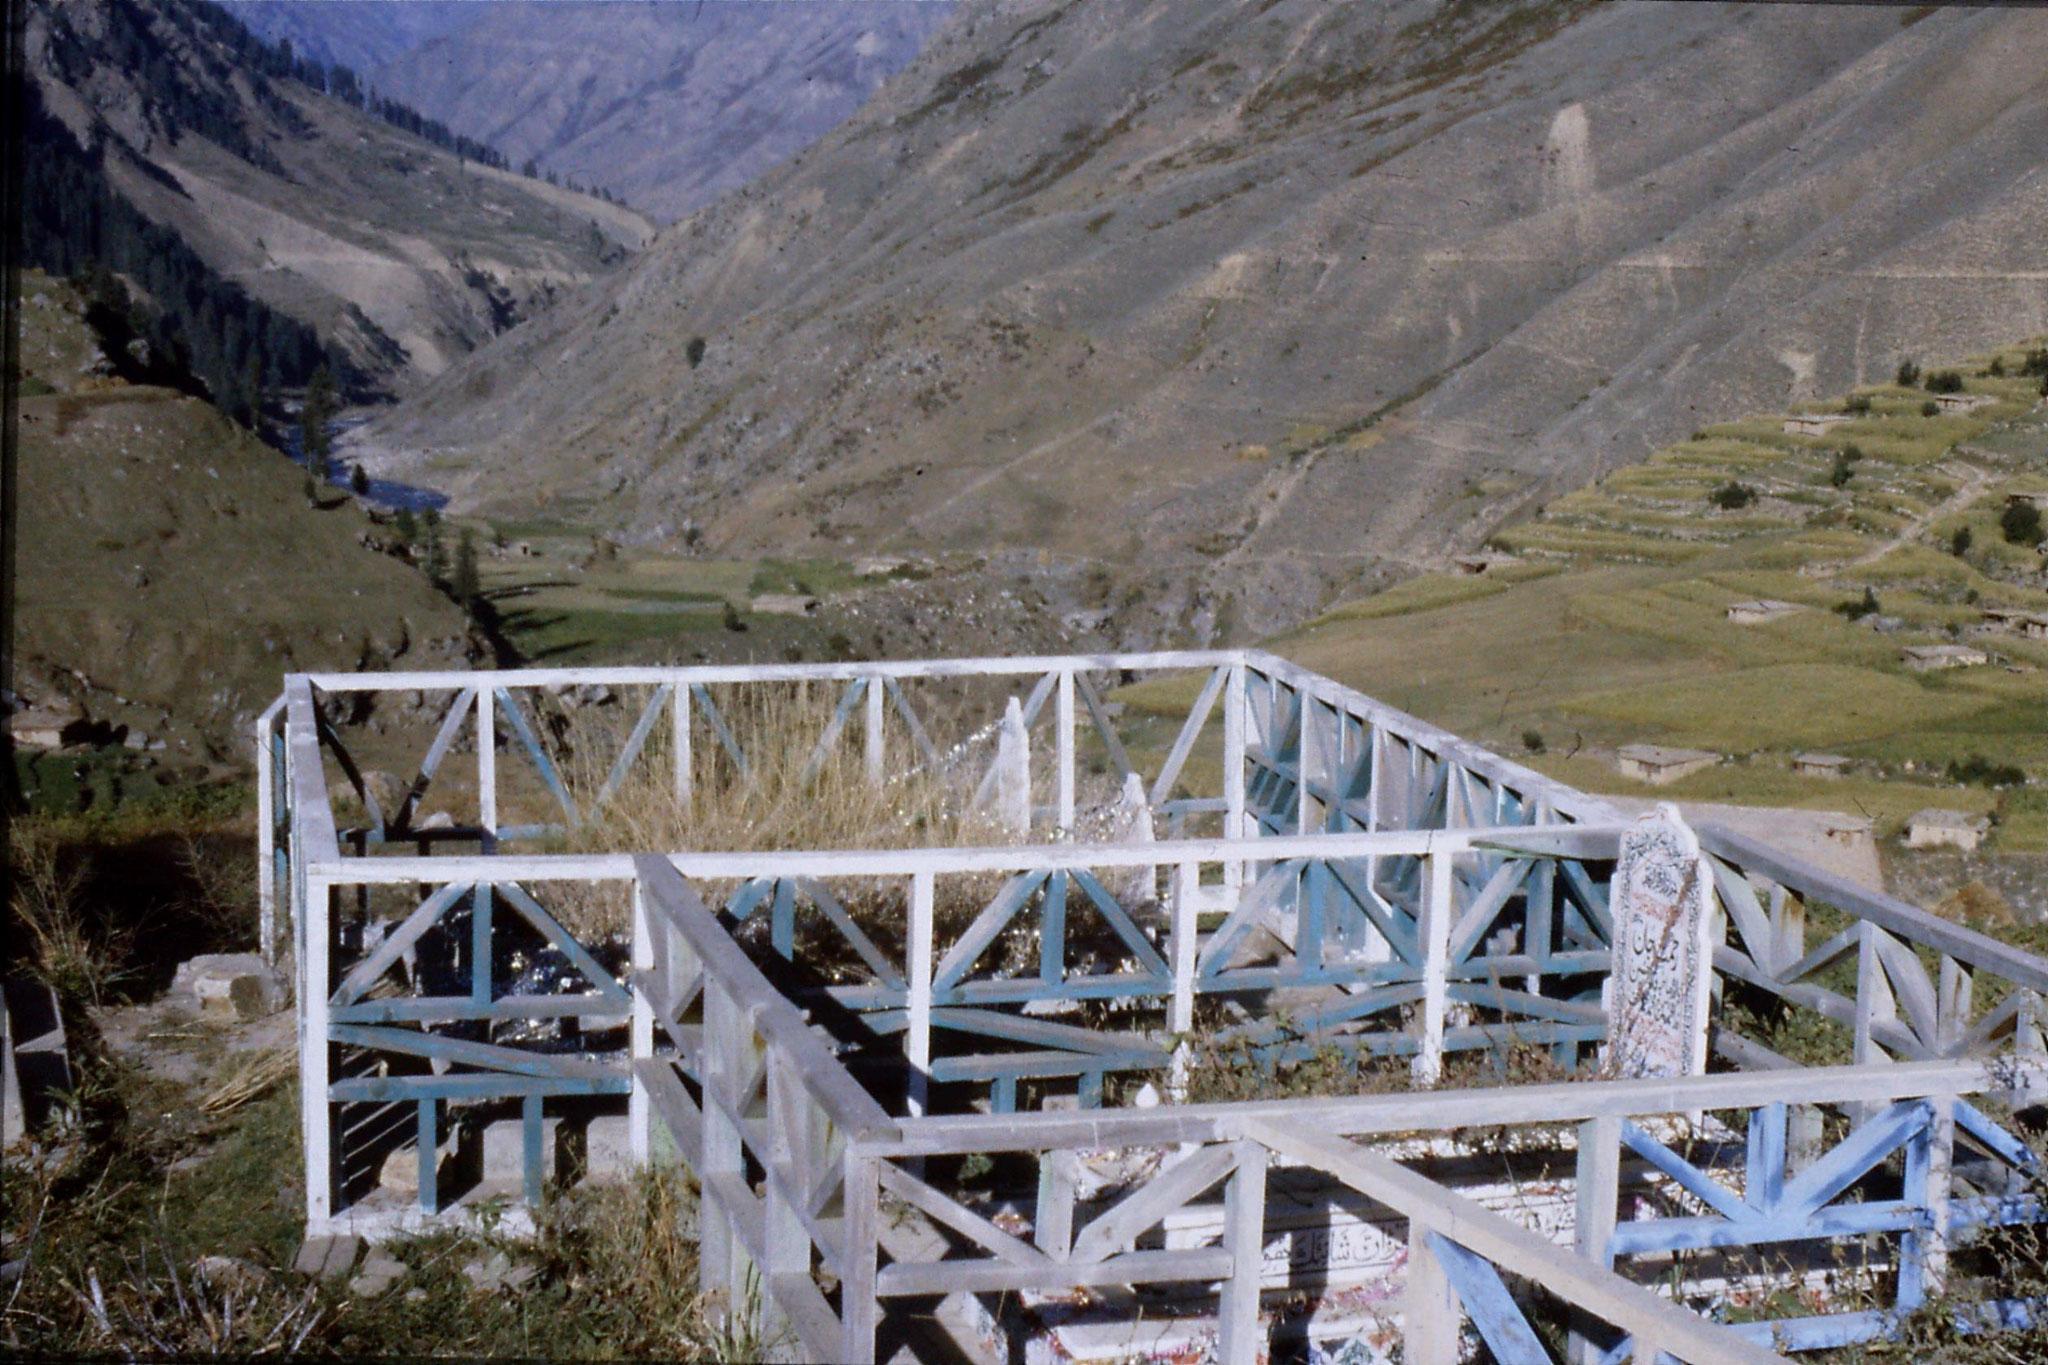 6/10/1989: 16: Kaghan Valley route to Batacundi